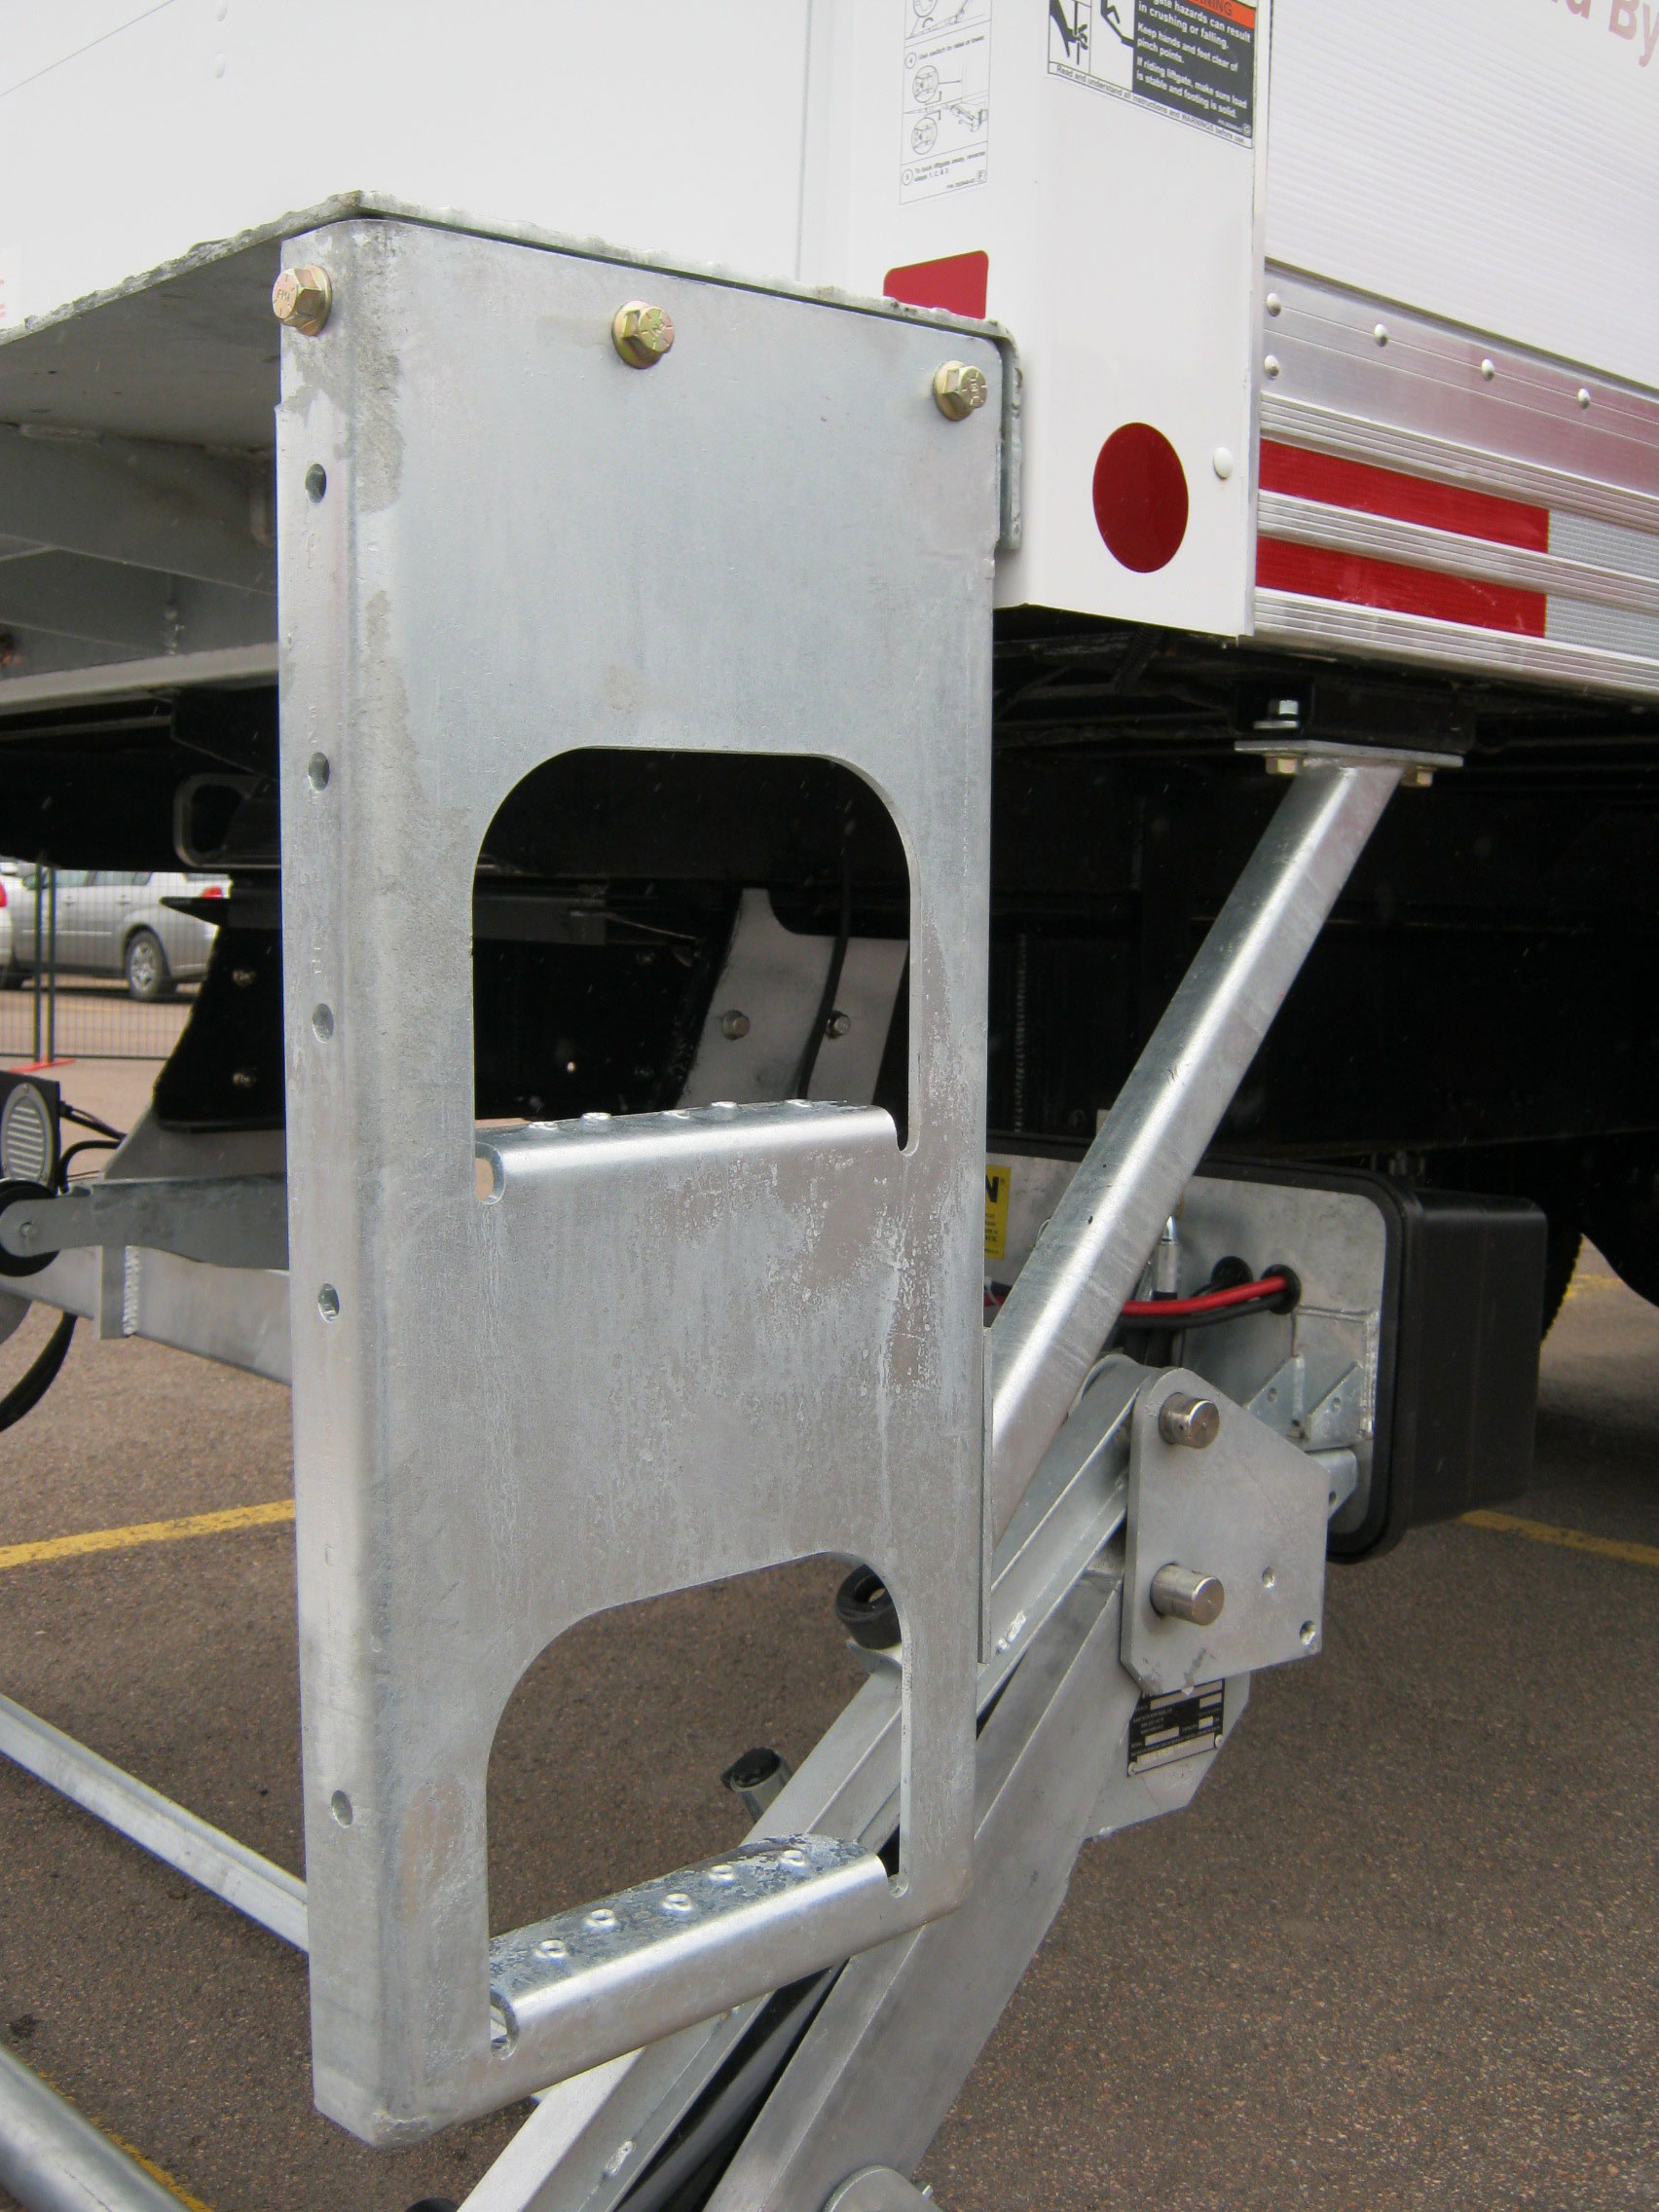 Maxon Gpt Model Charging Diagram Free Download Anthony Lift Gate Wiring Liftgate Manual At